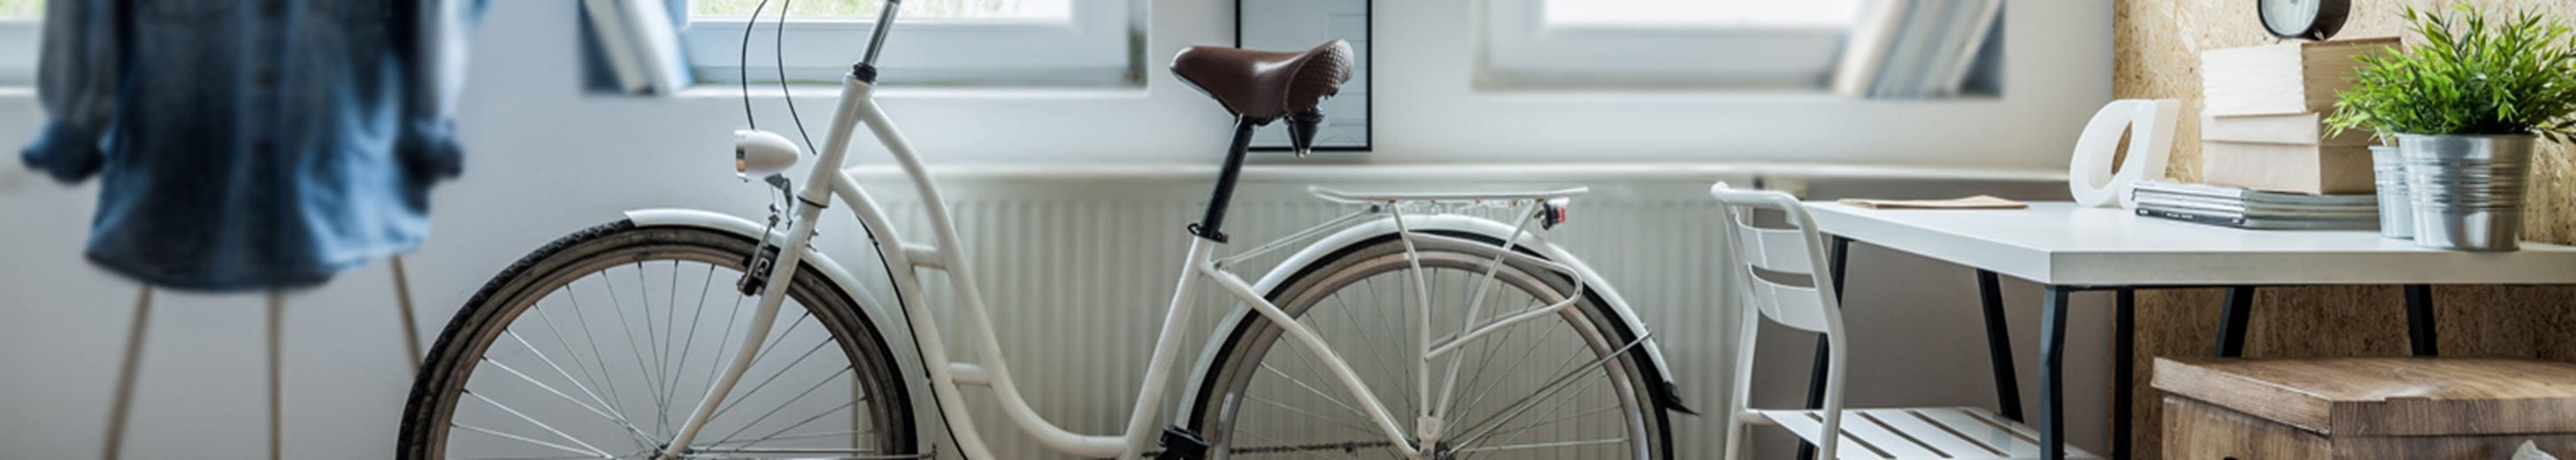 A bicycle next to a radiator